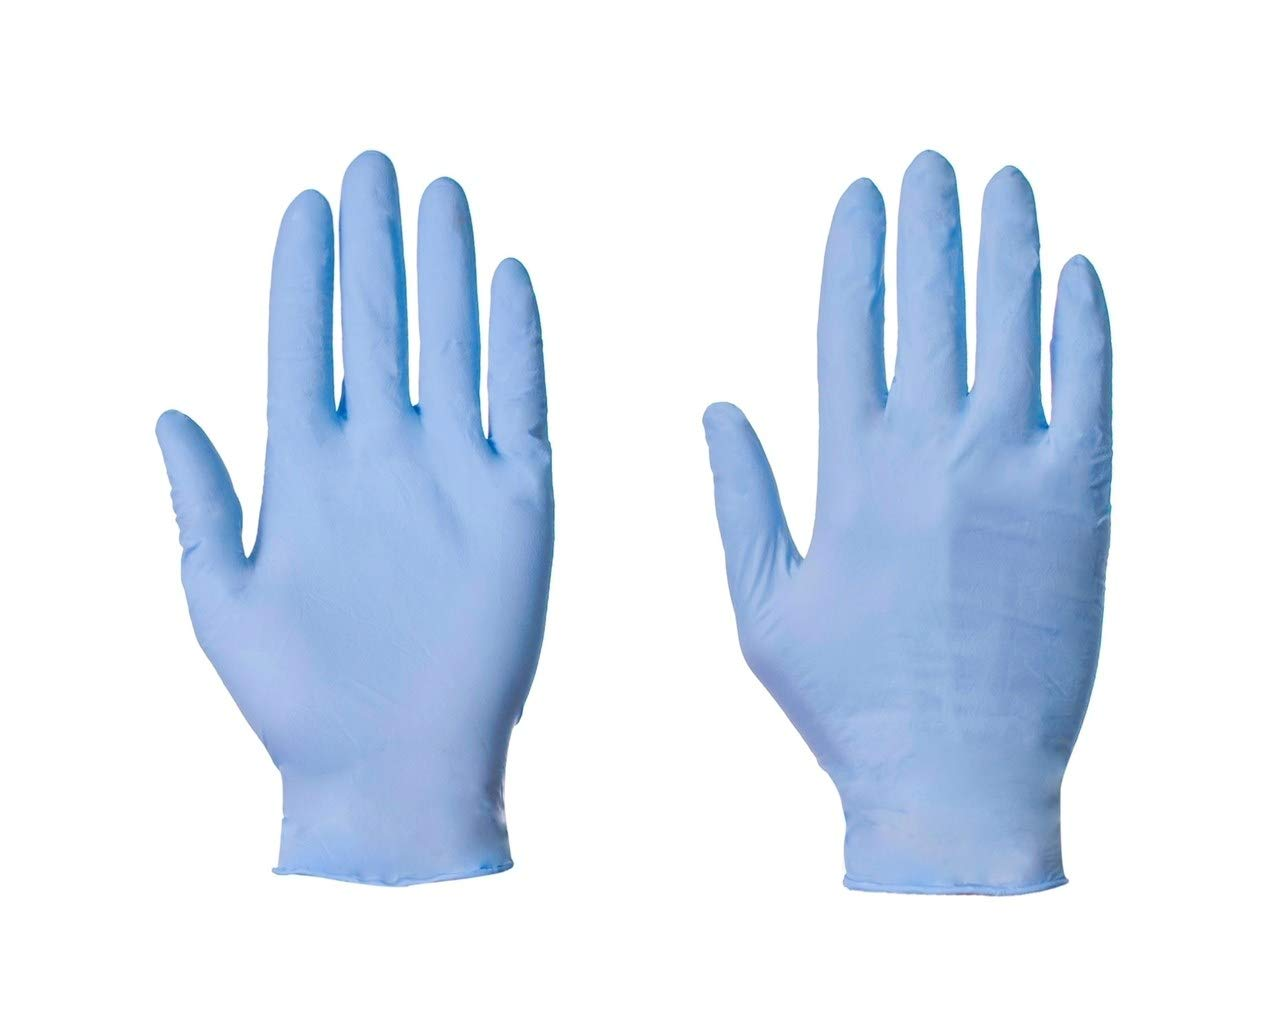 100 (1 Box) x Blue Nitrile (Latex & Powder Free) Gloves Disposable Food Medical etc. (Small)